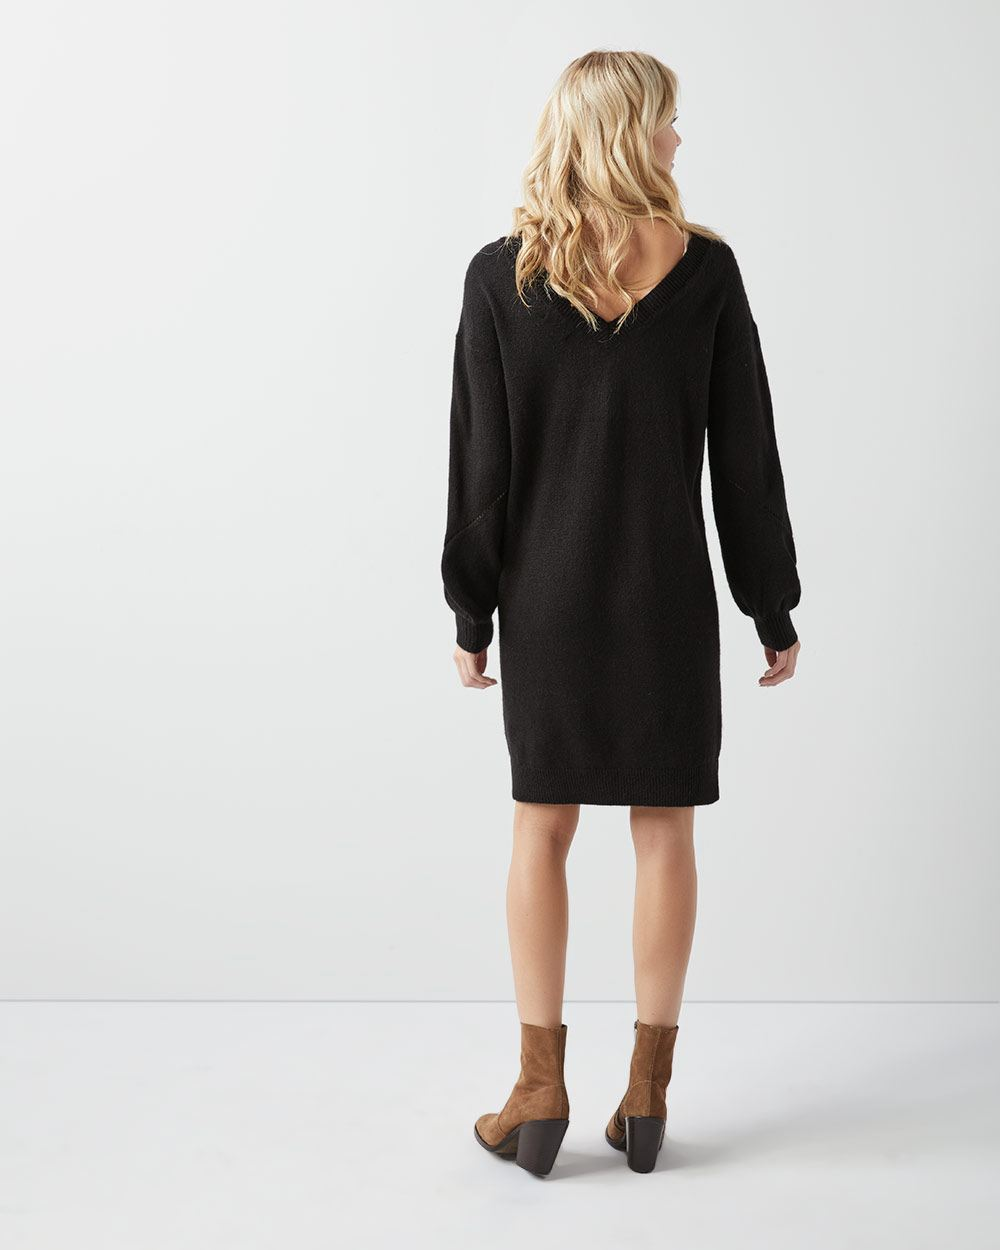 Spongy sweater dress with plunging back